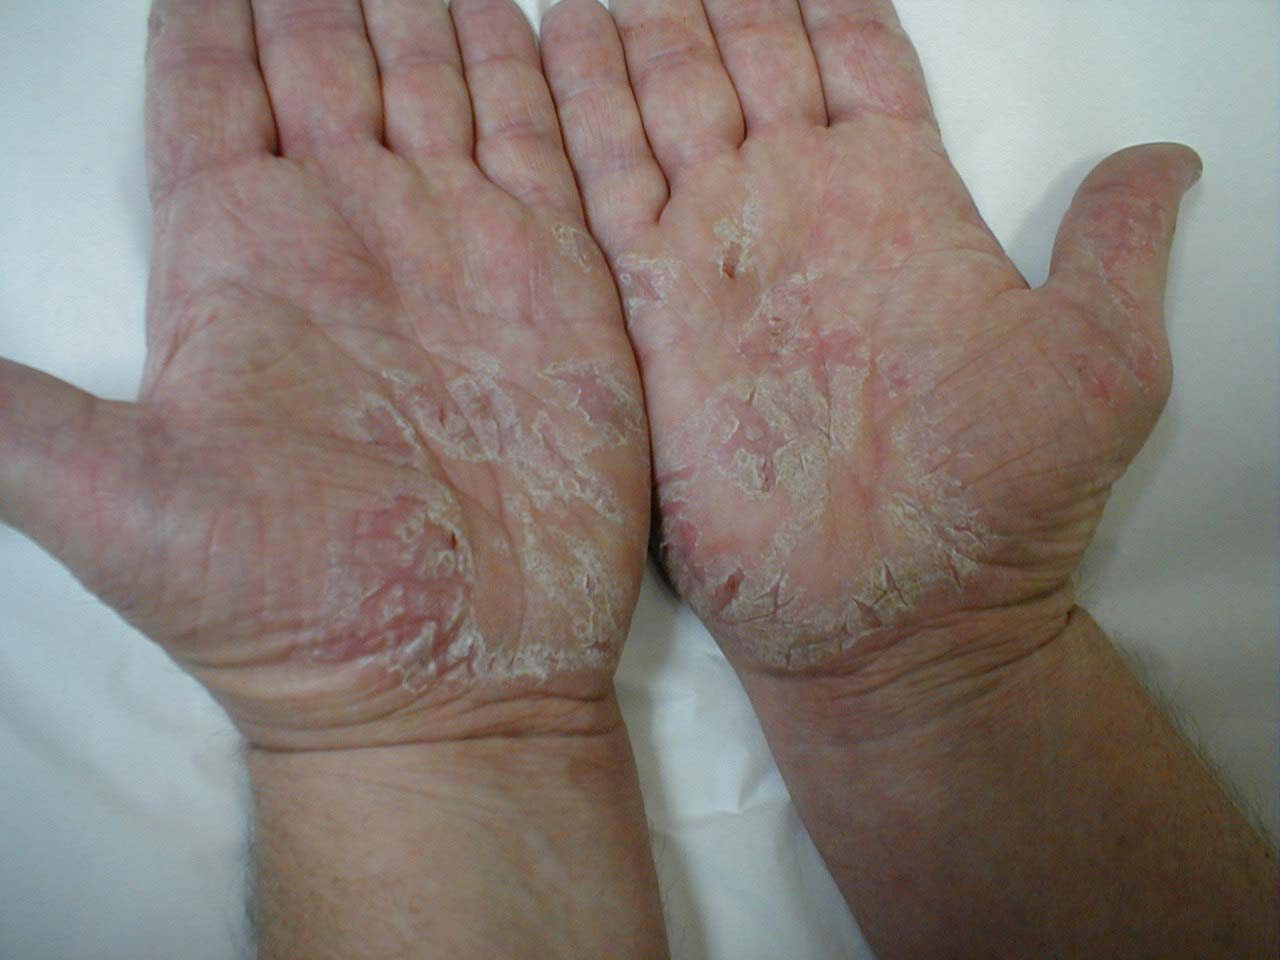 Exfoliative dermatitis hands